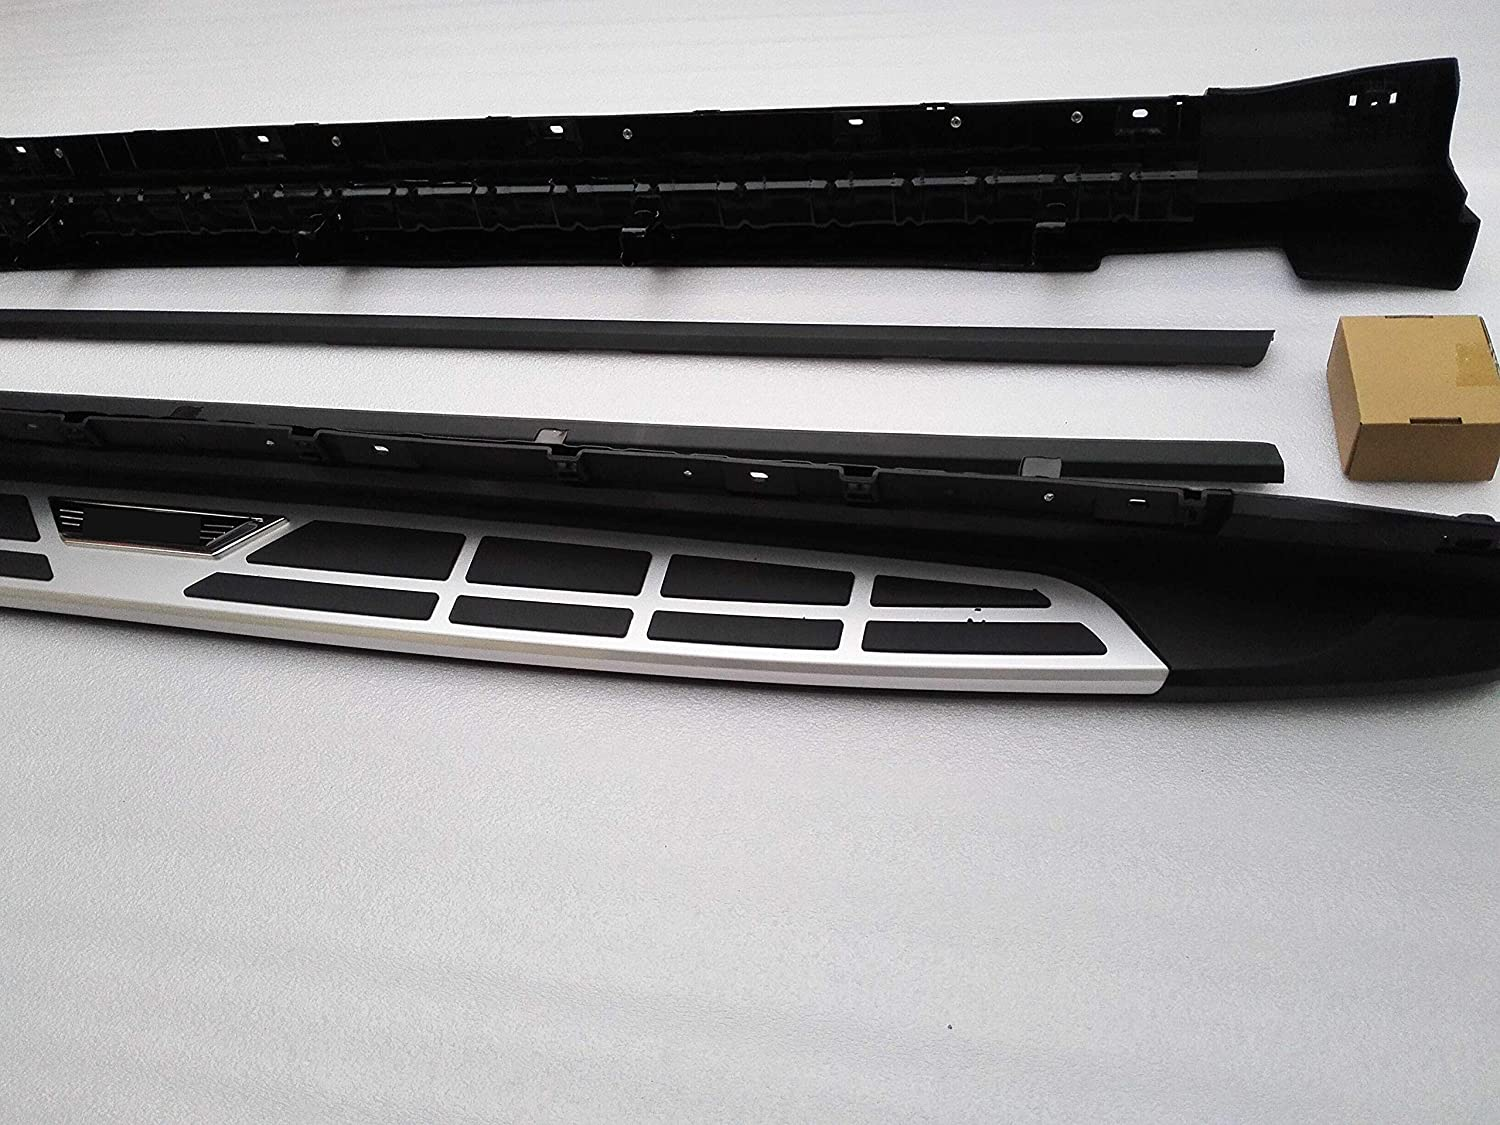 Snailfly Fit for KIA Sorento 2015 2016 2017 2018 2019 2020 Running Boards Side Steps Nerf Bar